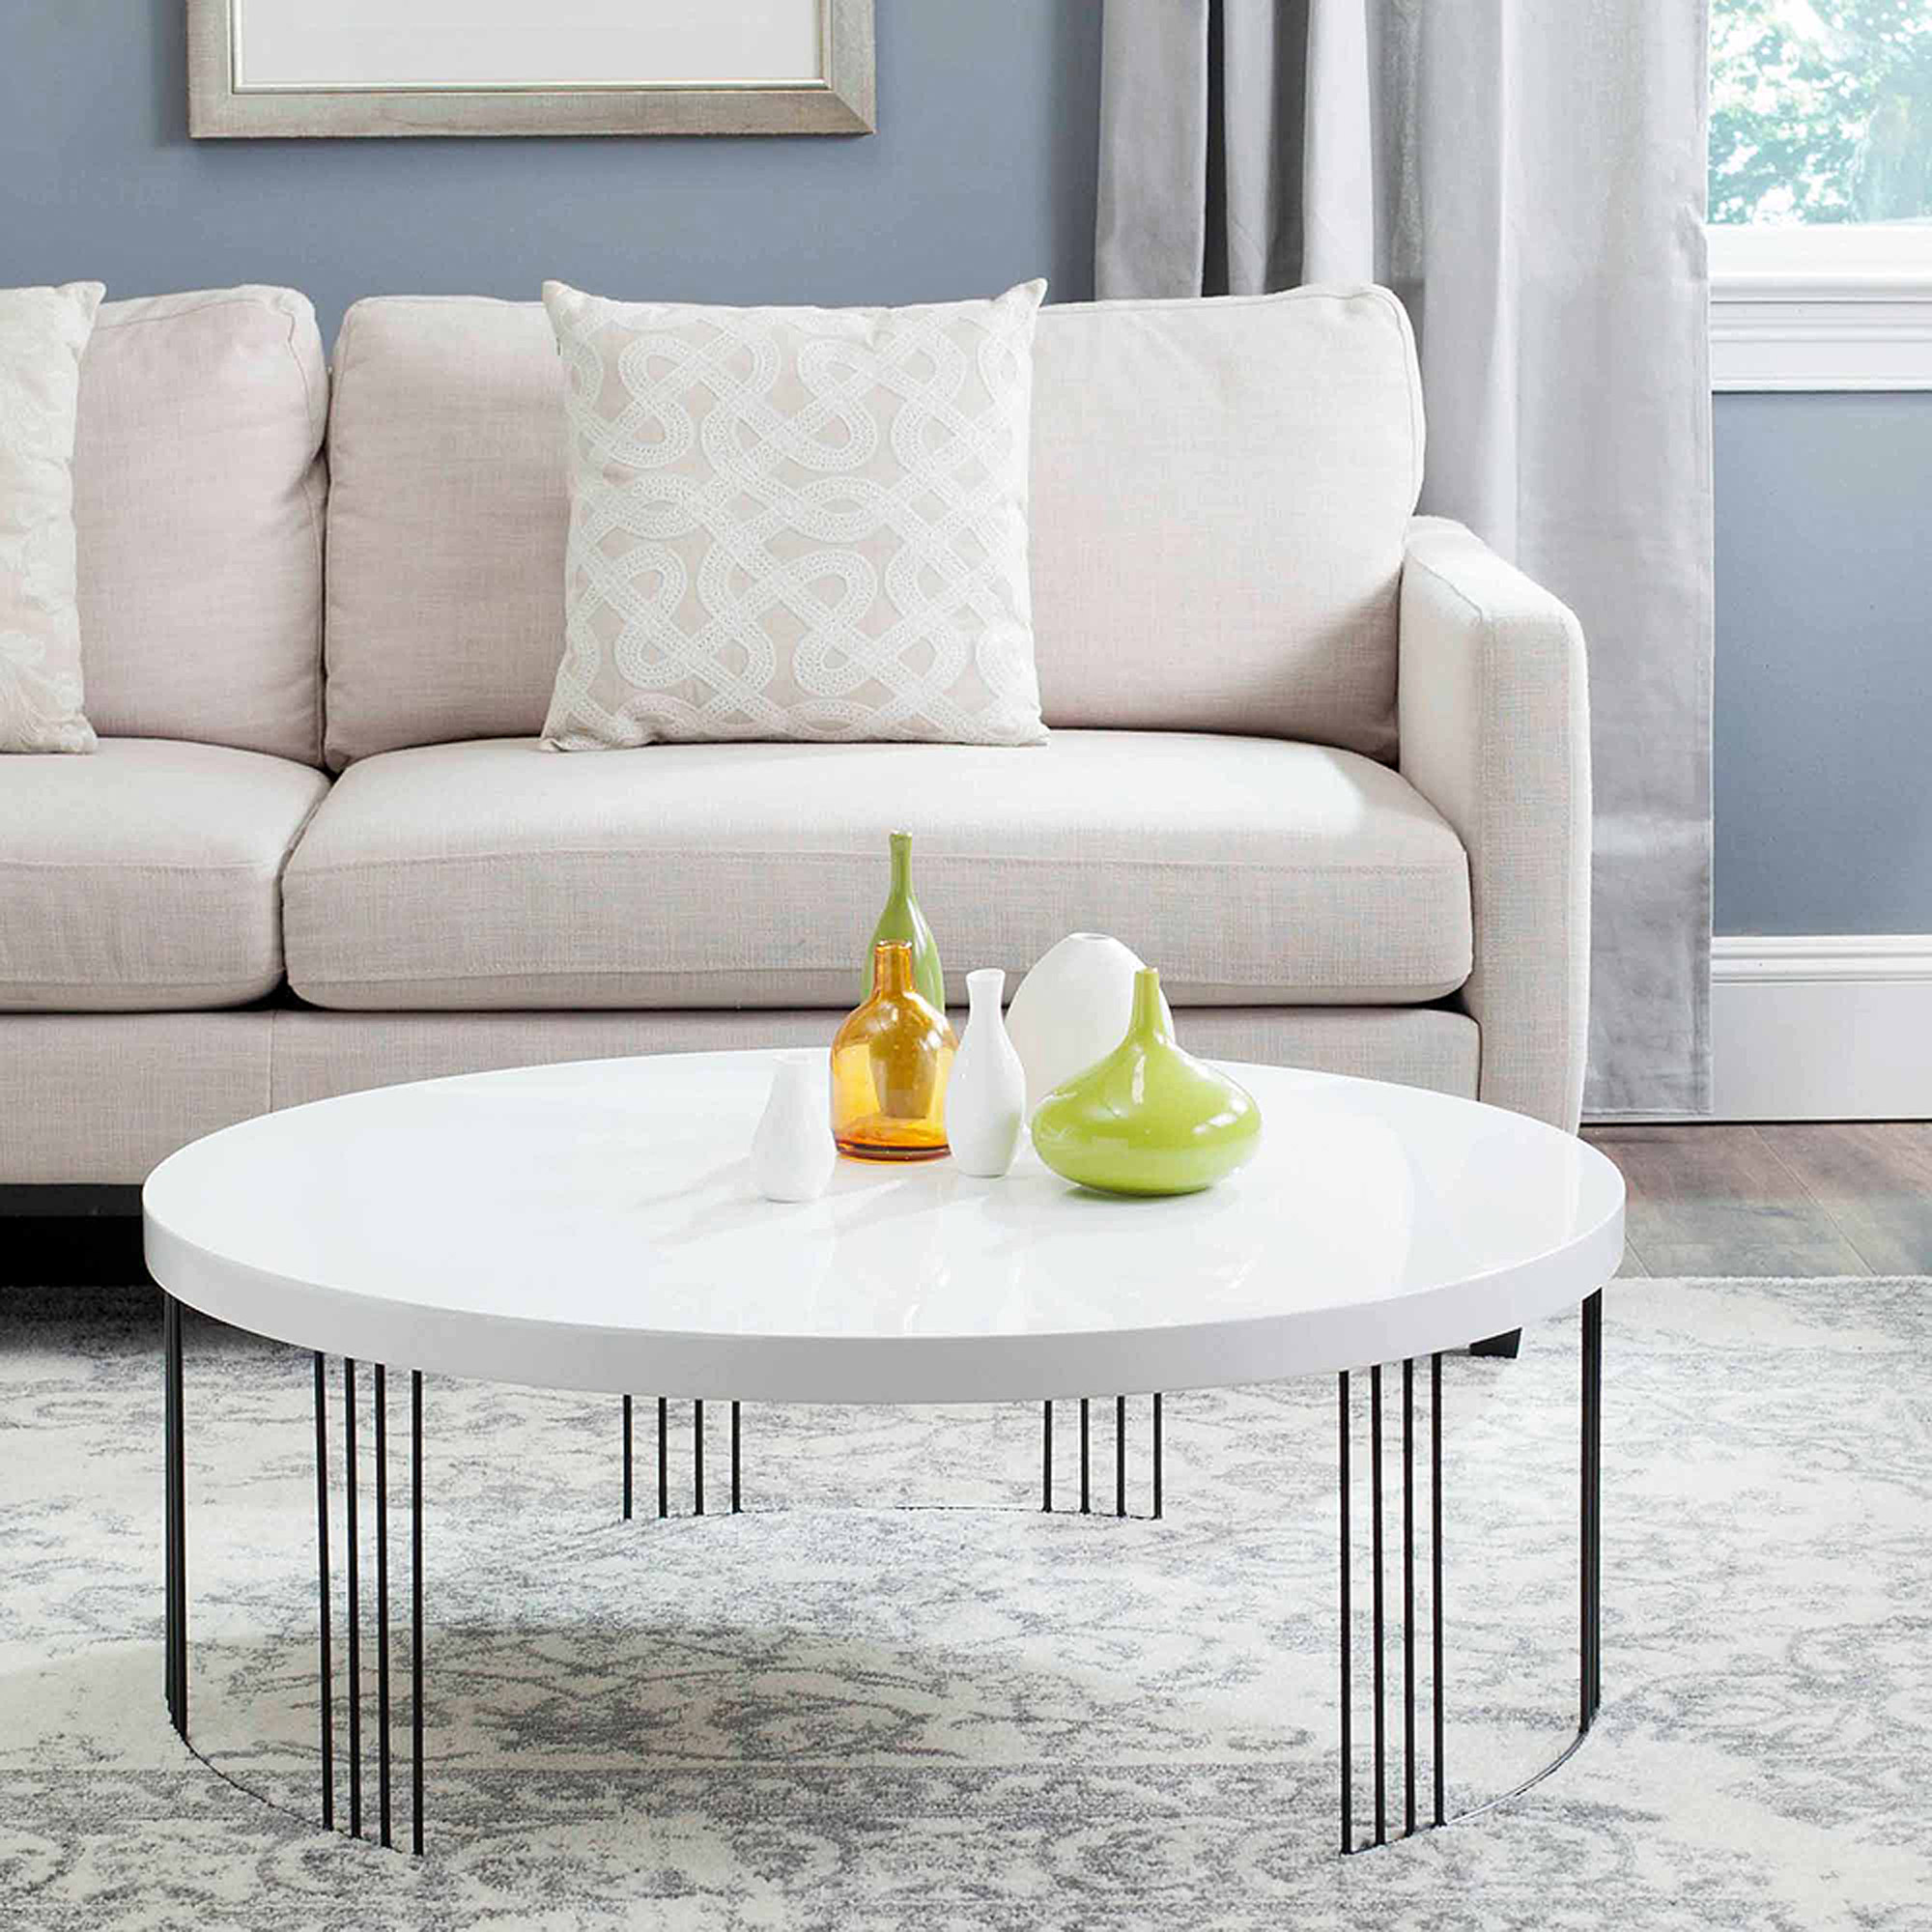 Safavieh Keelin Coffee Table, Multiple Colors